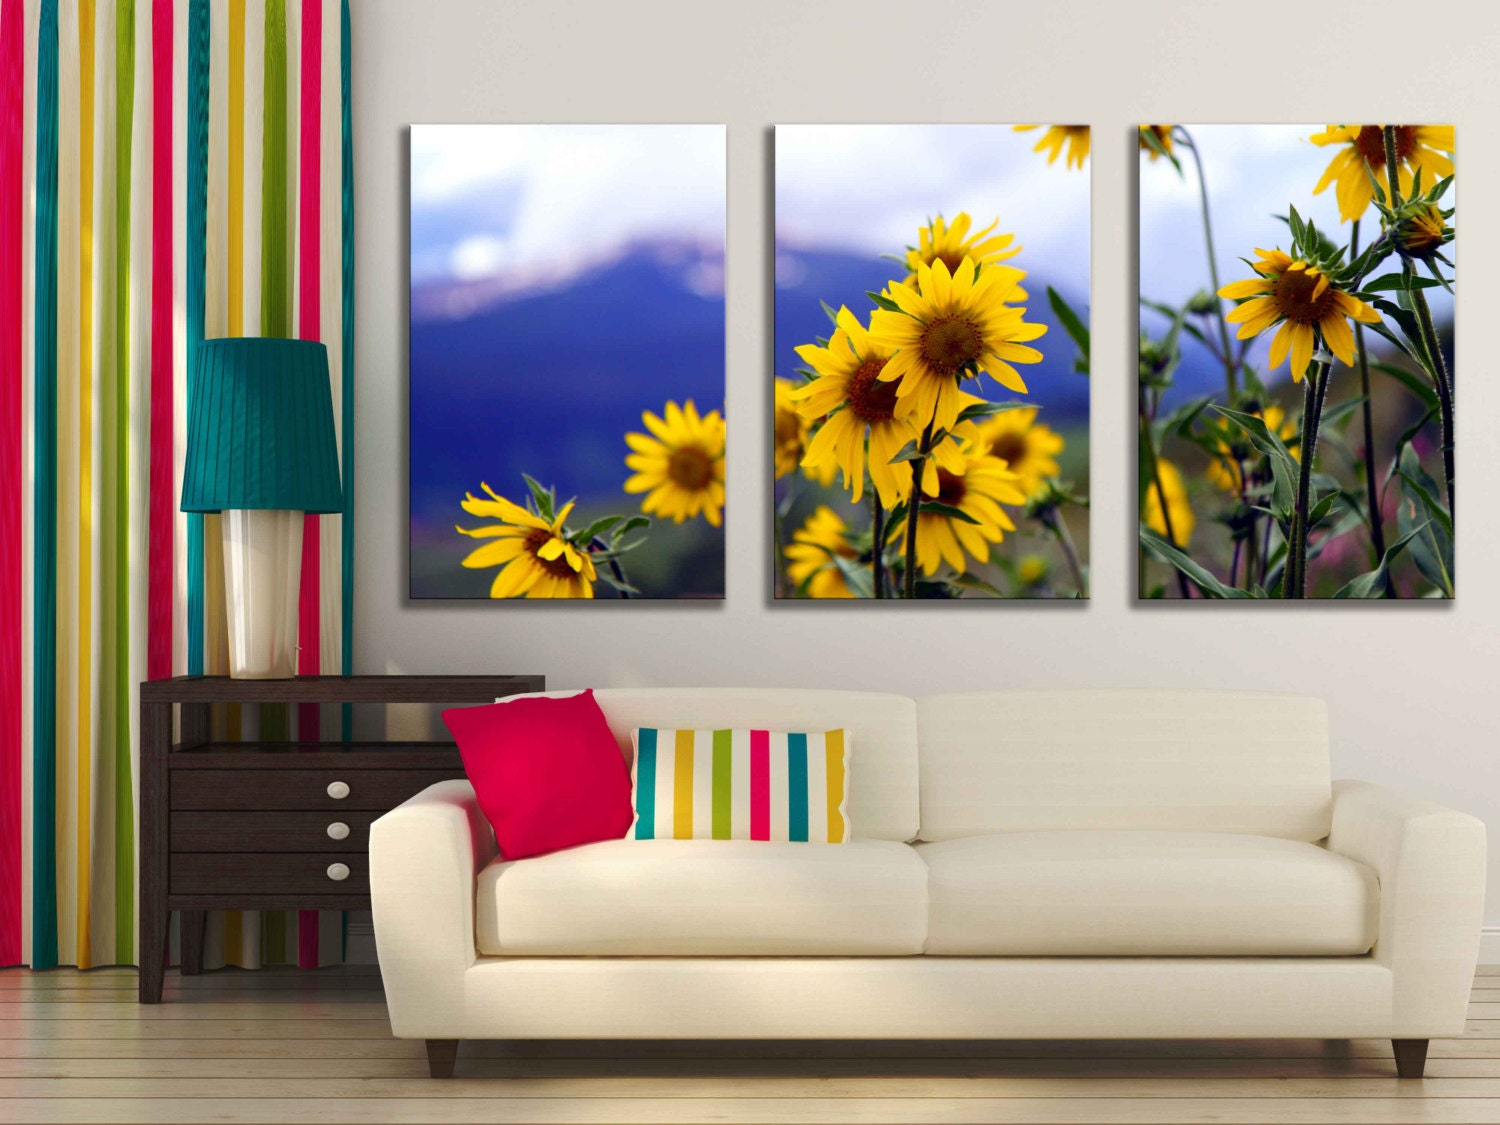 Gallery wrapped canvas sunflower flower nature home decor for Sunflower home decor